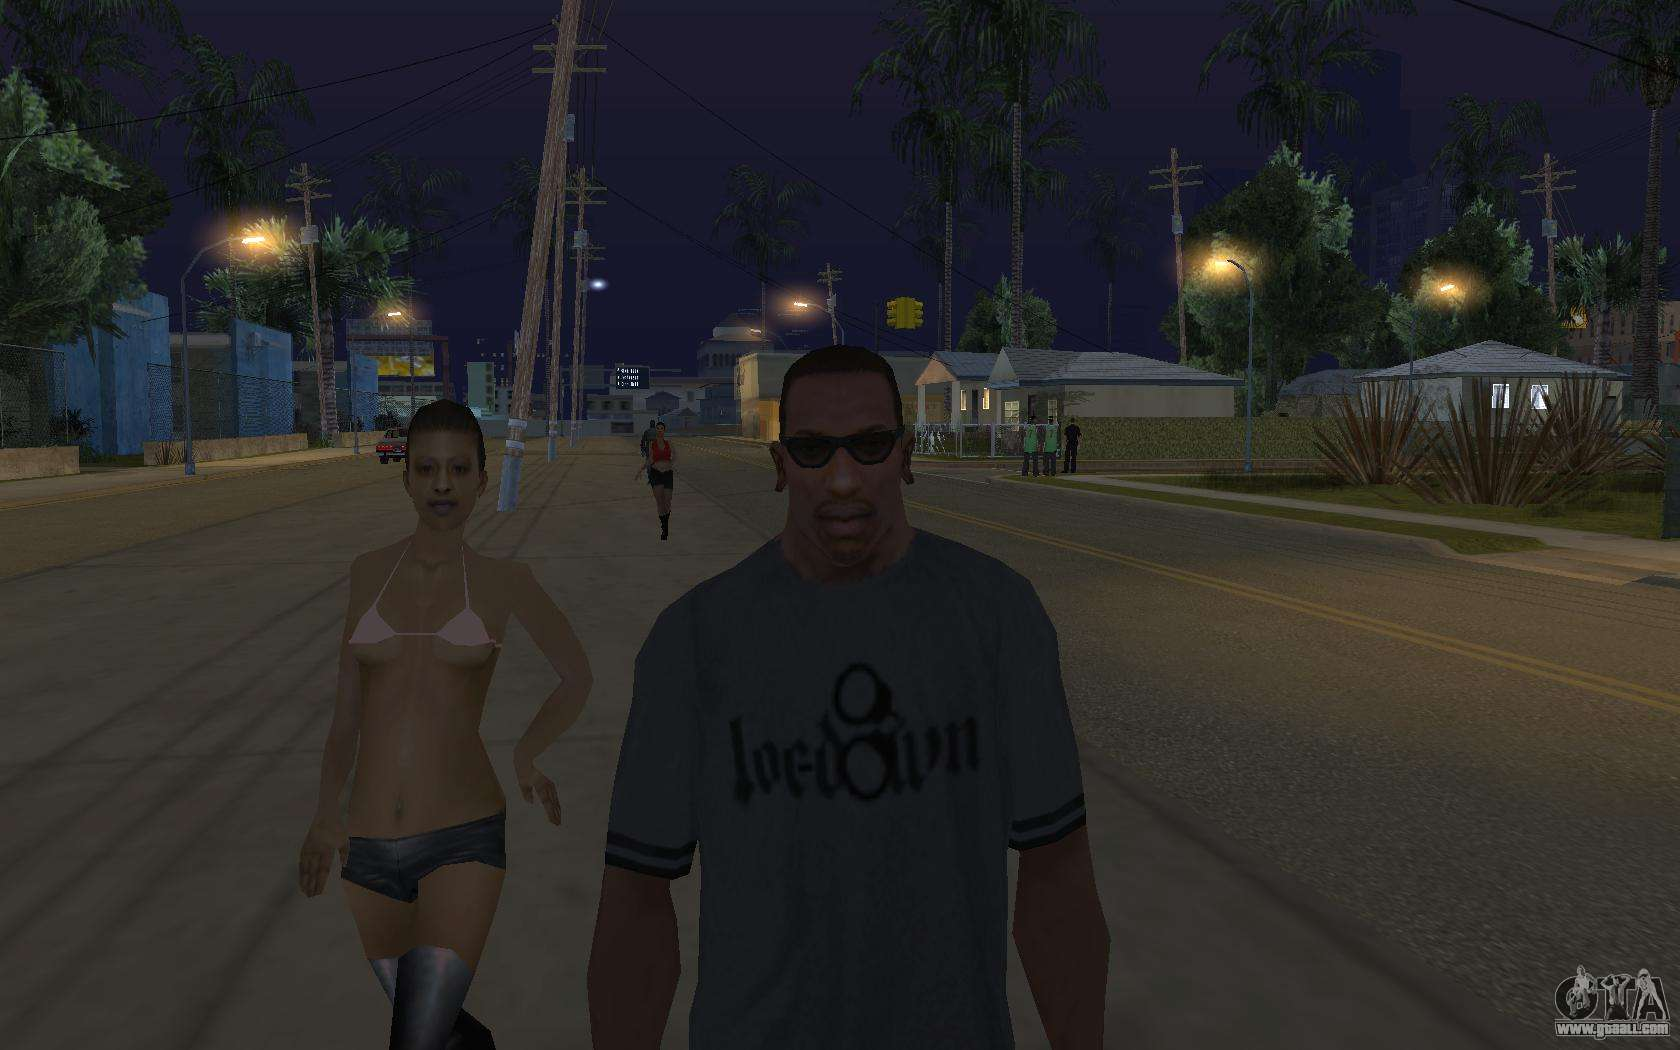 Gta on sex How have to